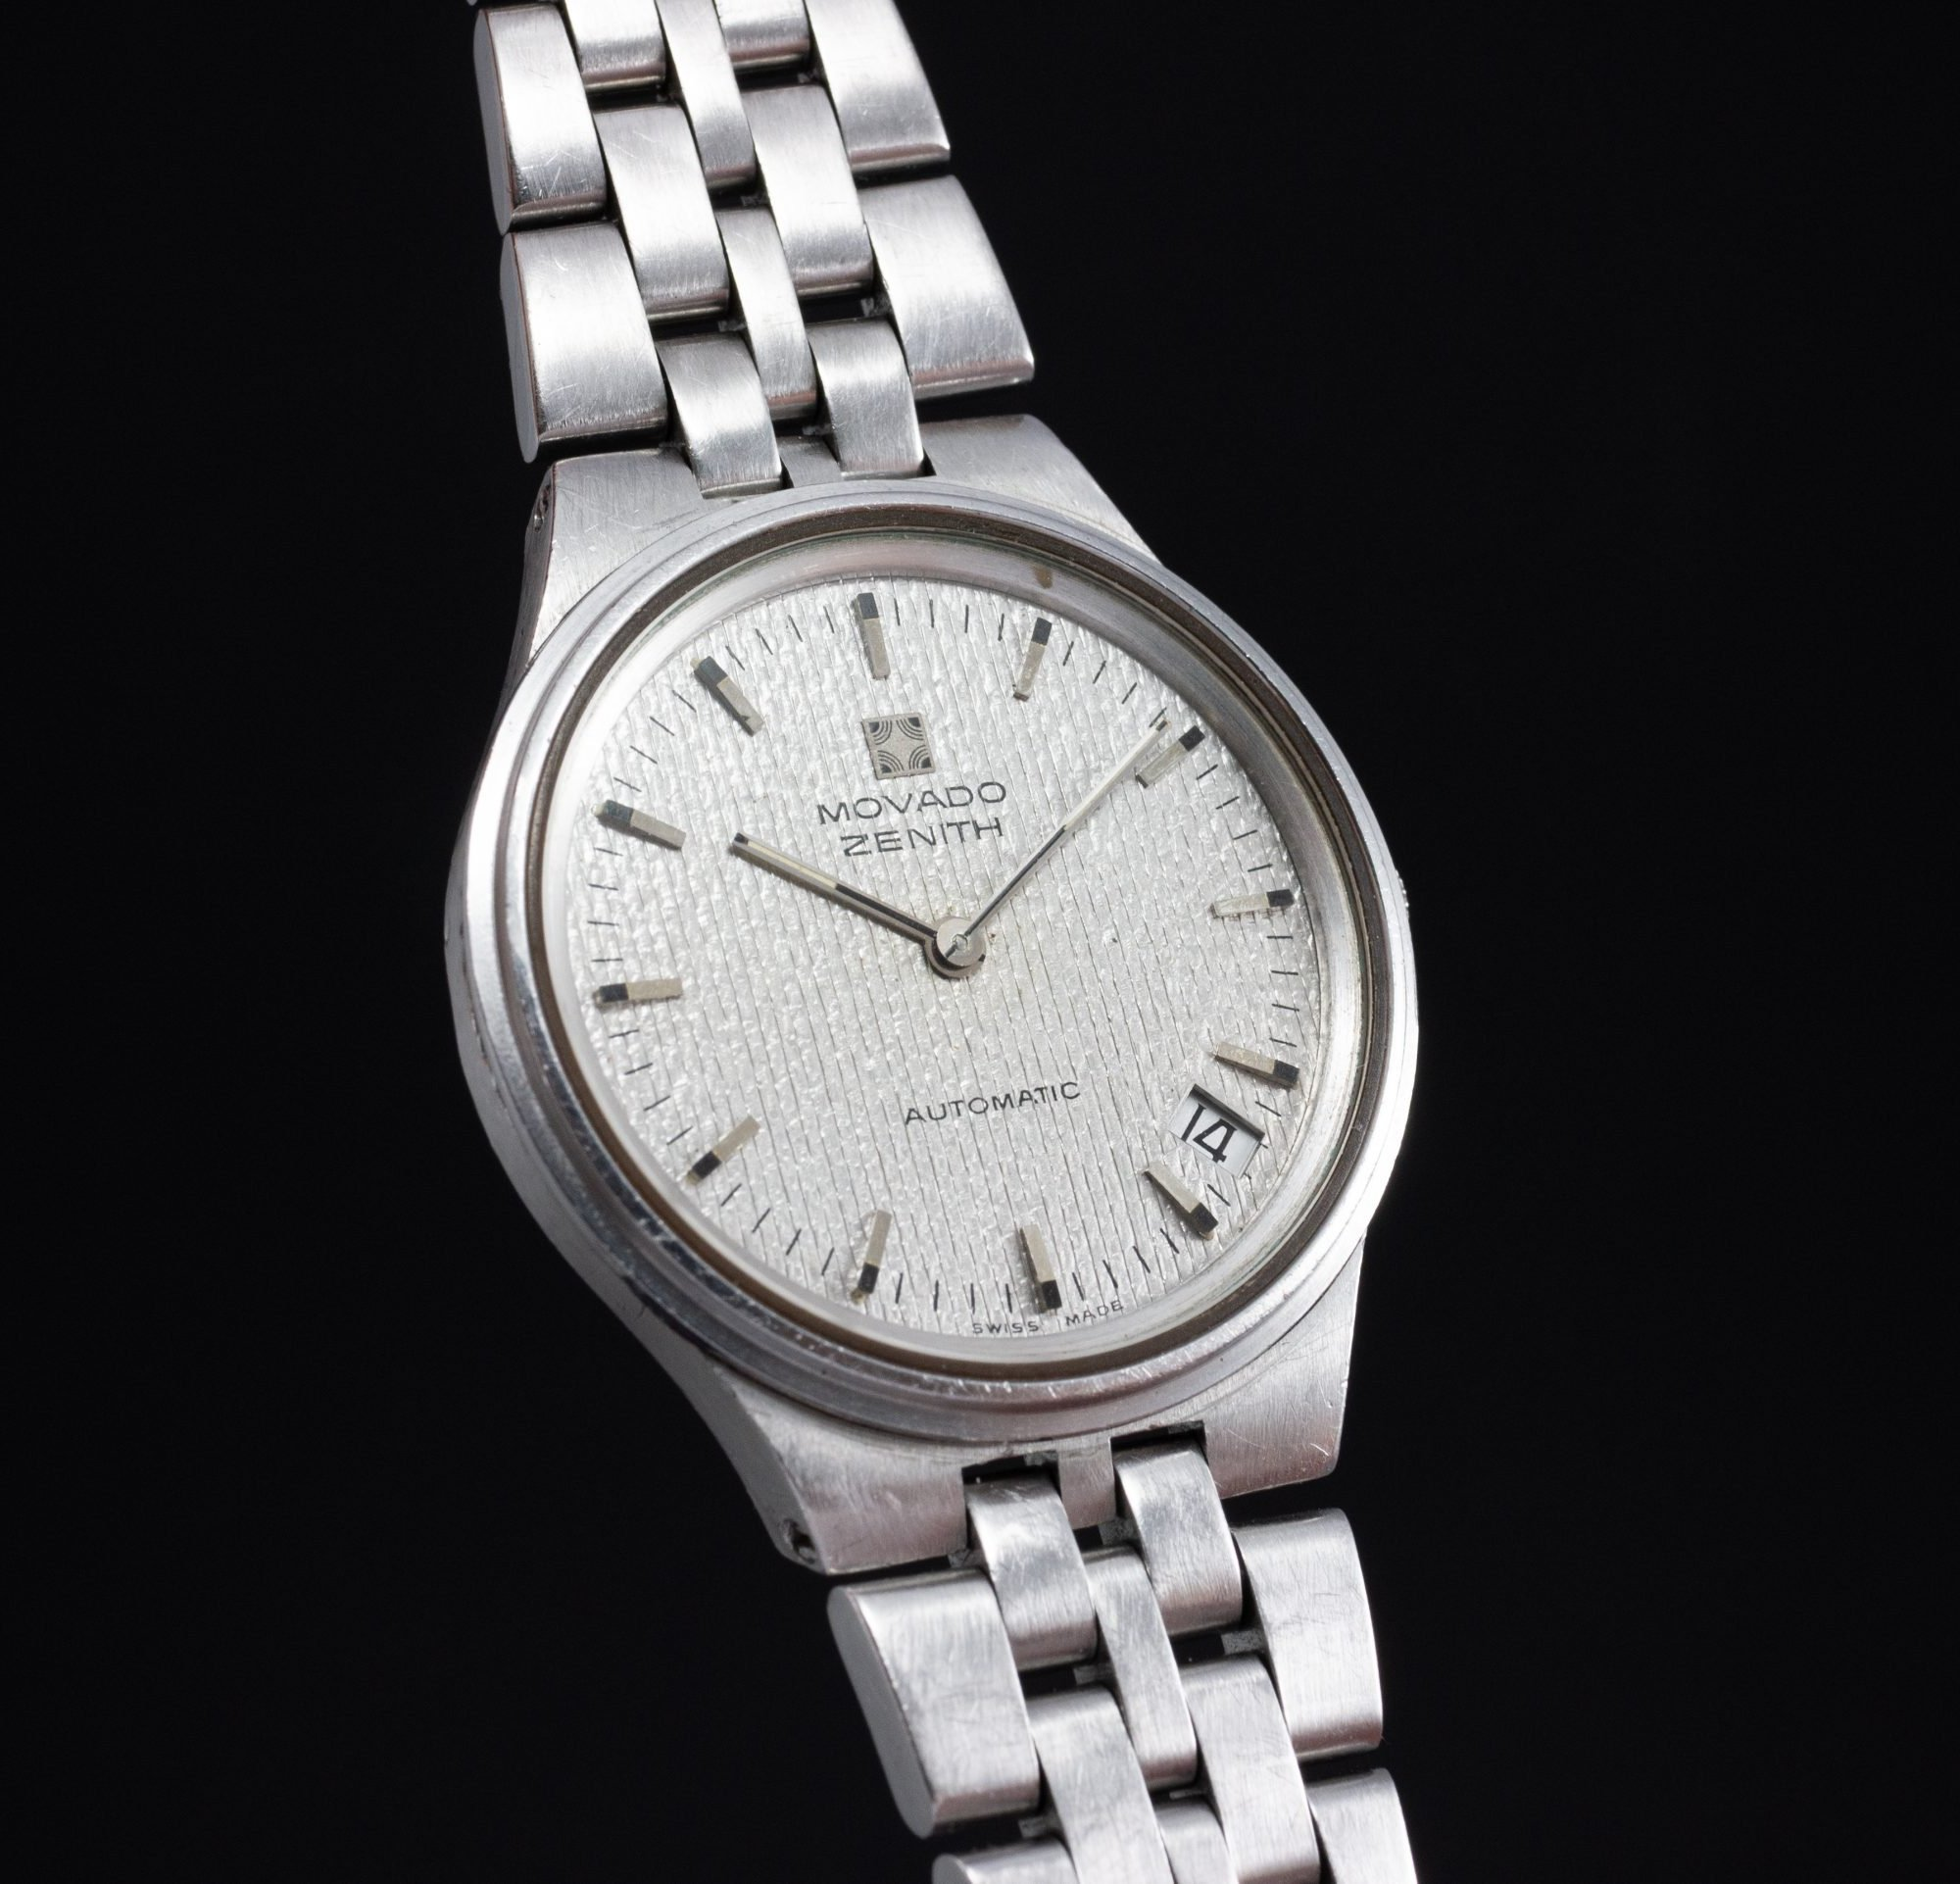 vintage Zenith Movado Zenith Automatic Microrotor cal 10.1 steel integrated bracelet date